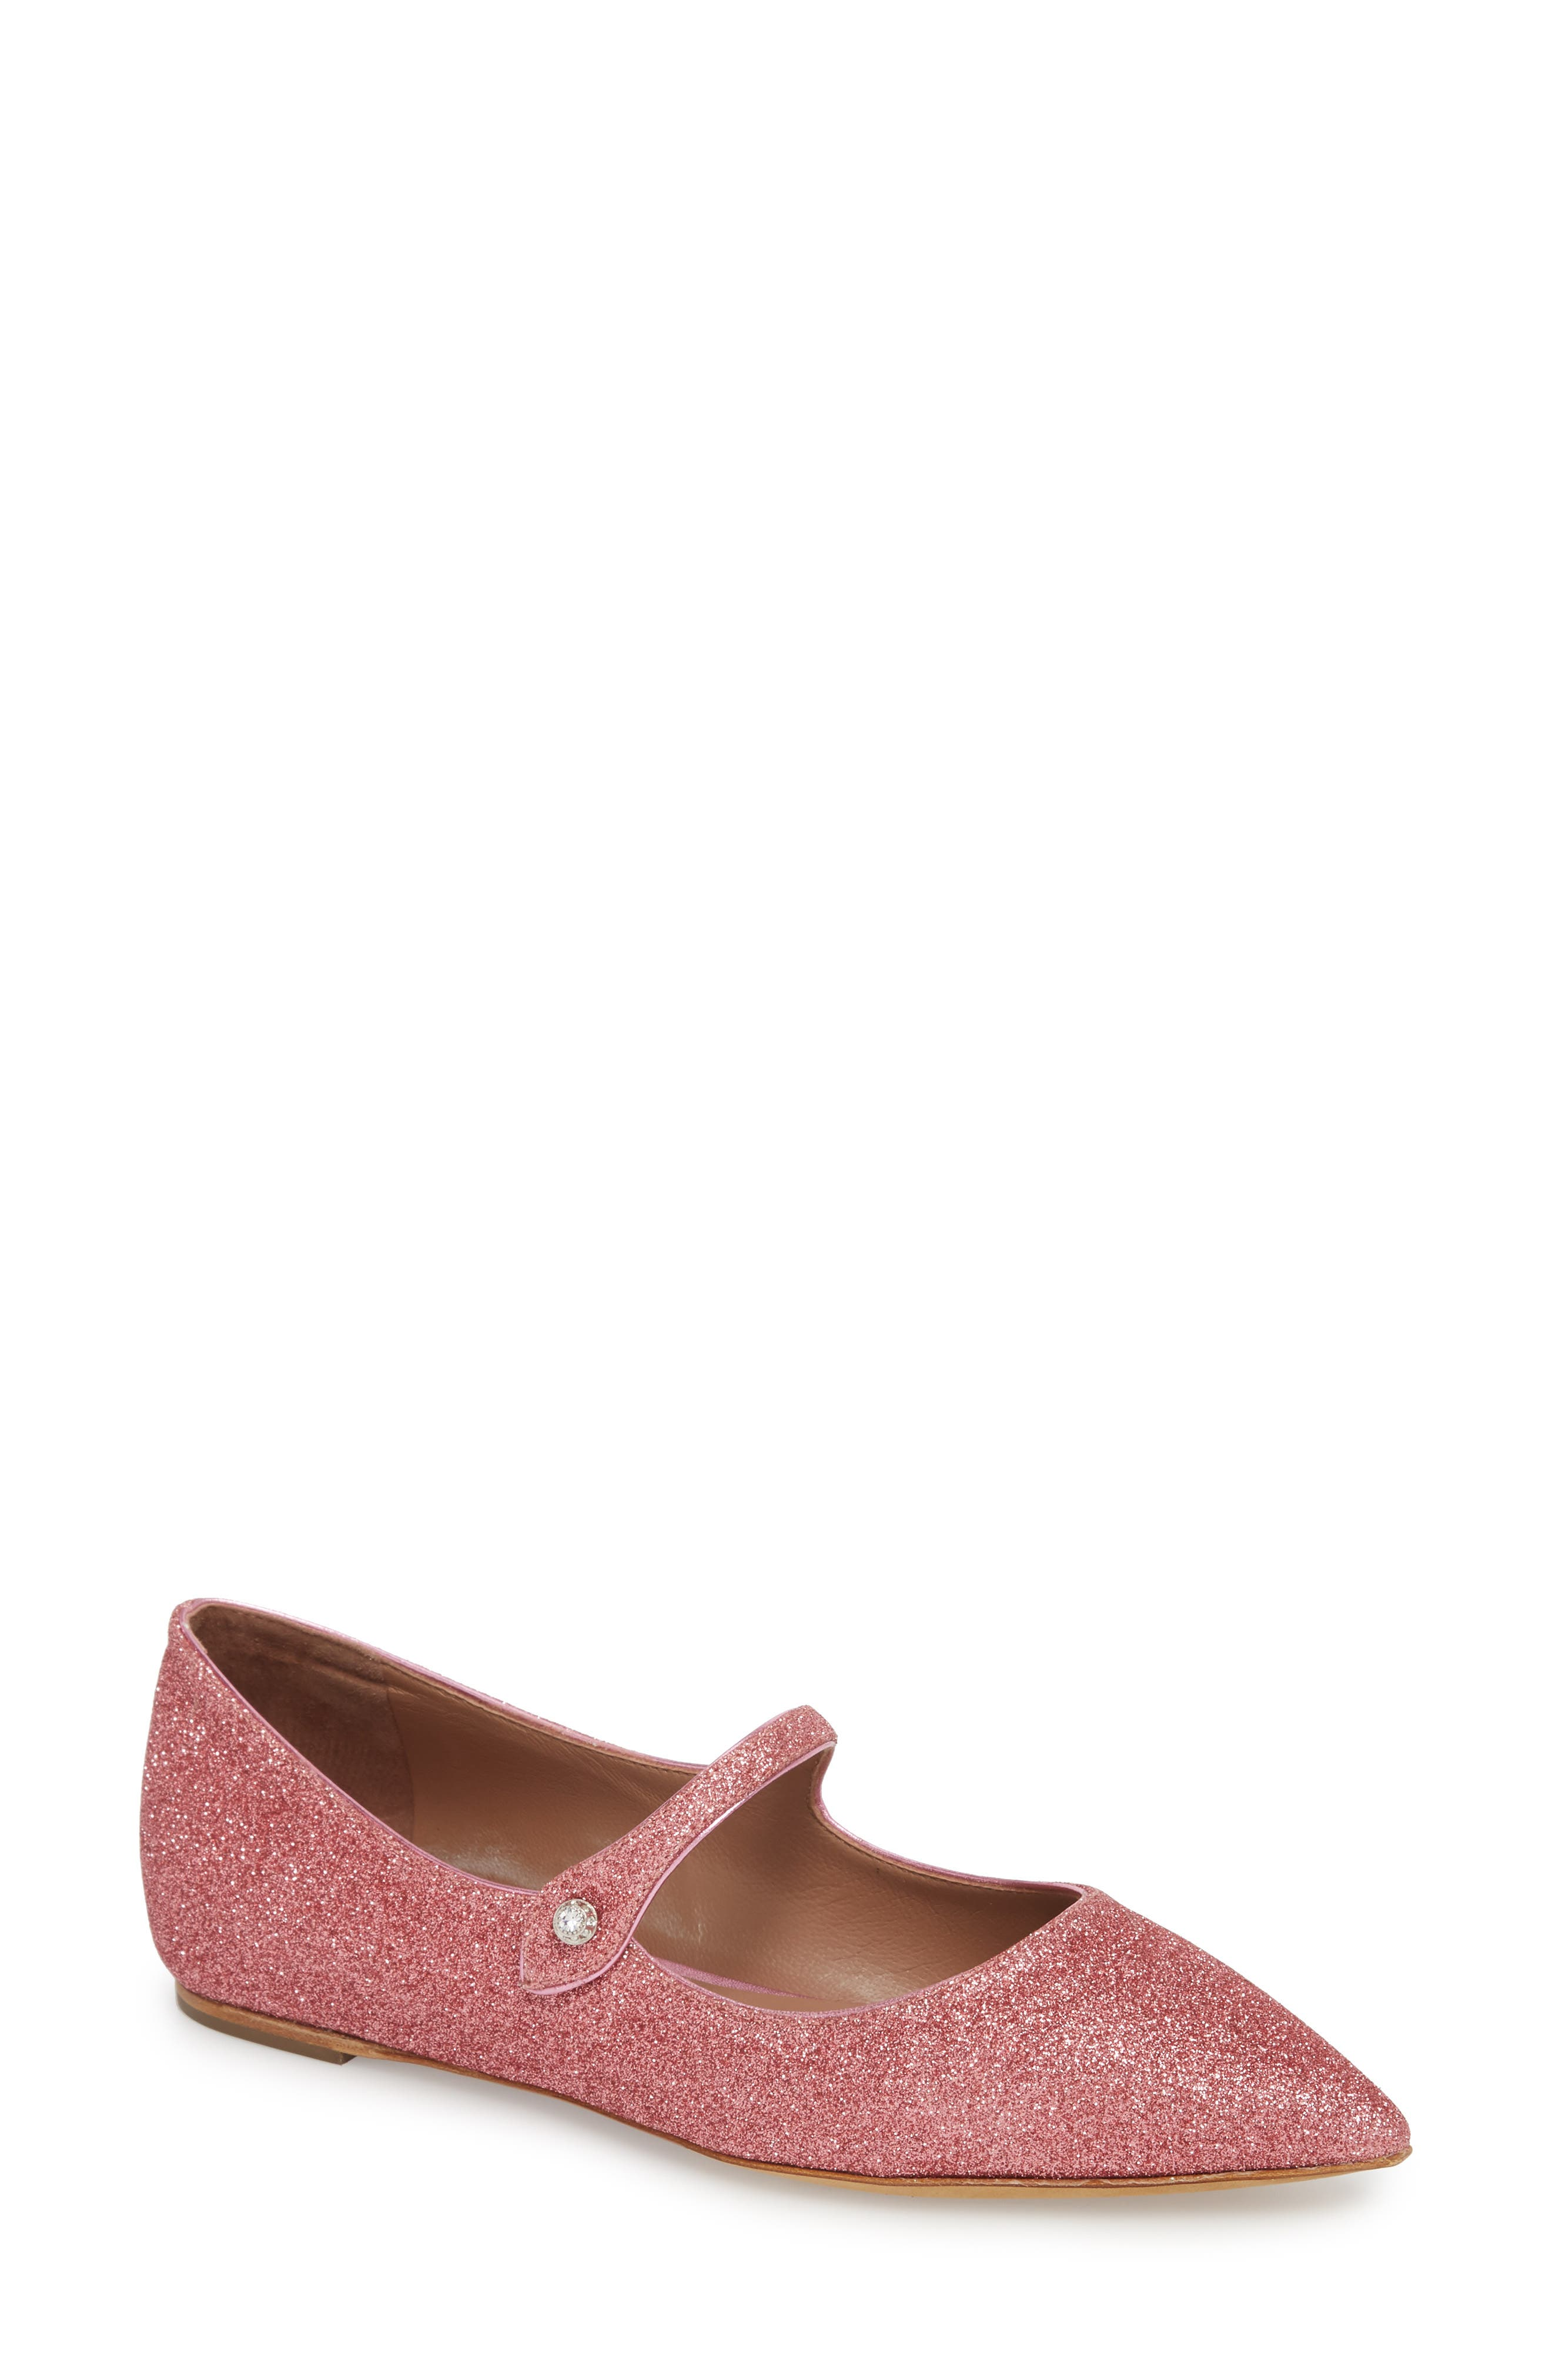 Tabitha Simmons Hermione Mary Jane Flat - Pink